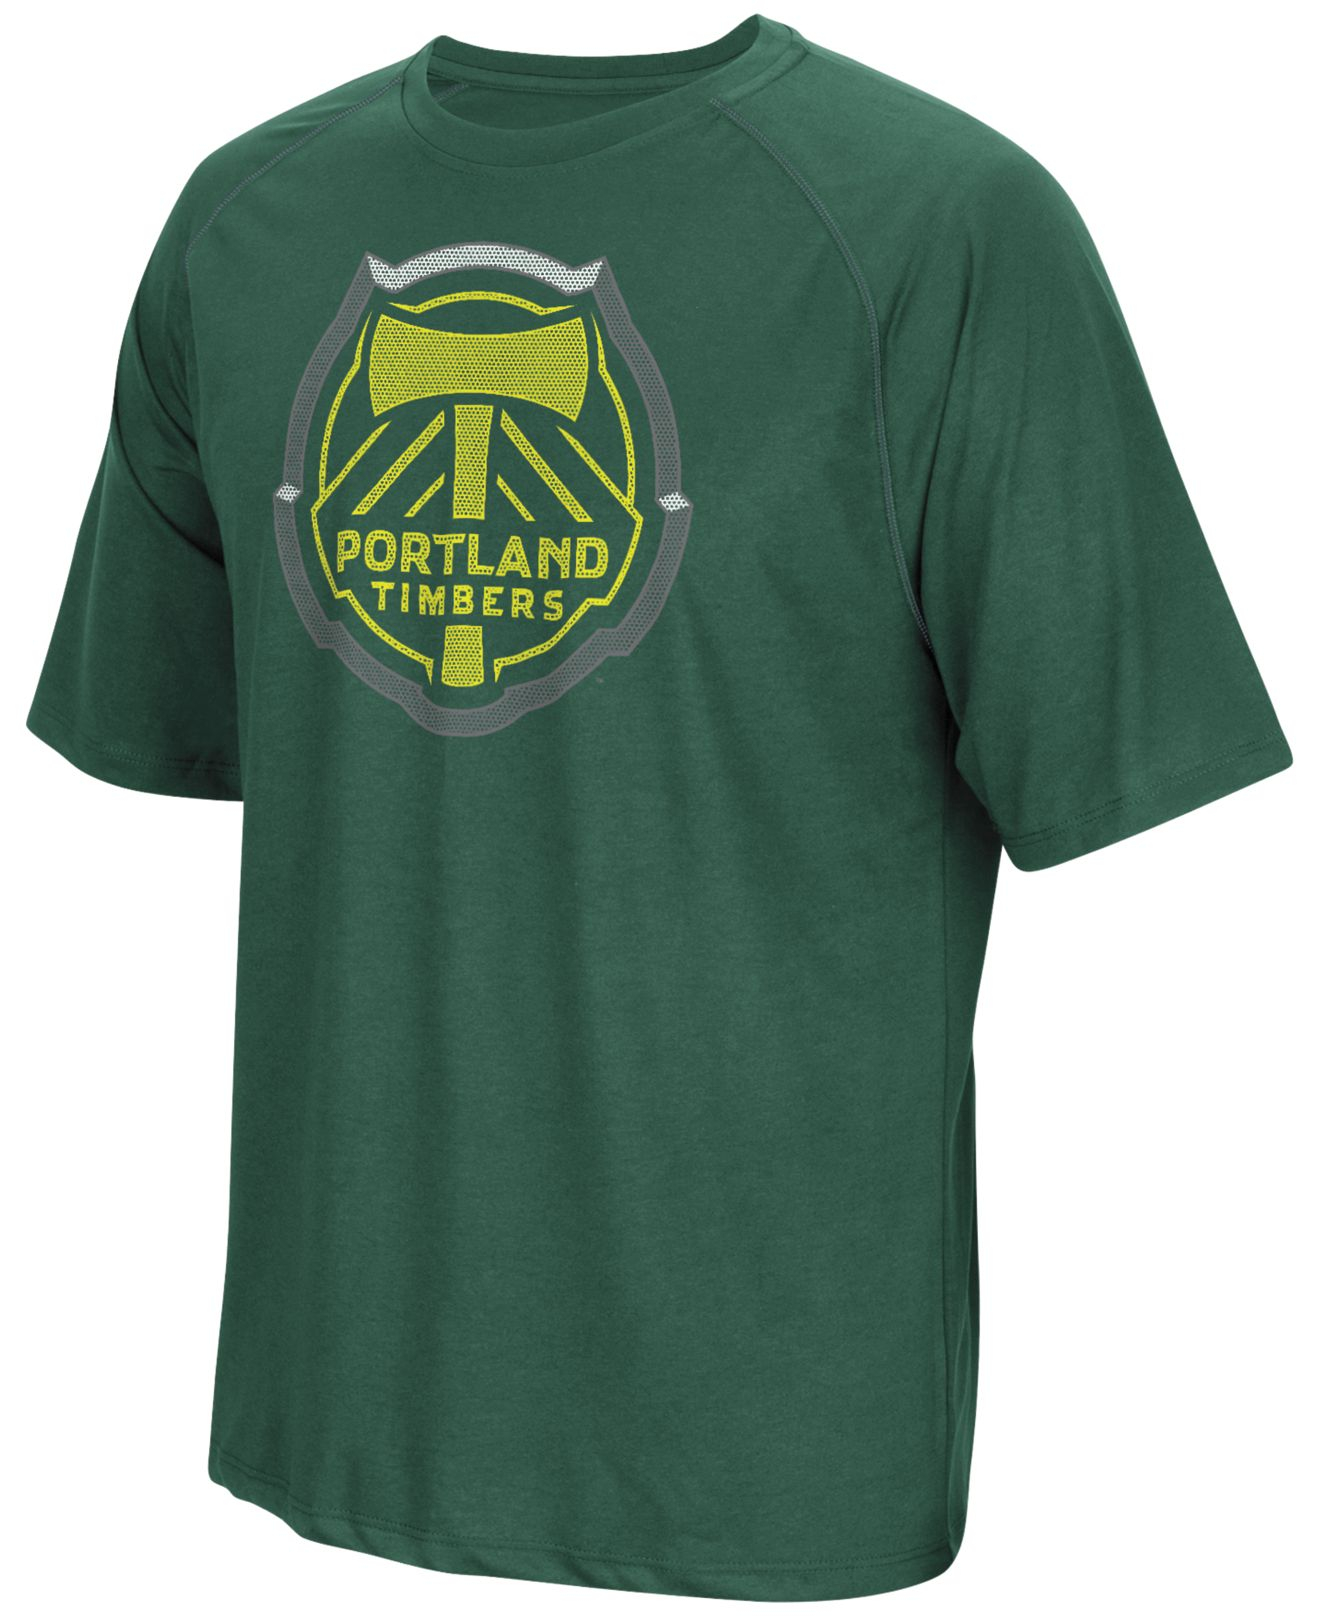 Adidas originals men 39 s portland timbers t shirt in green for Portland t shirt printing